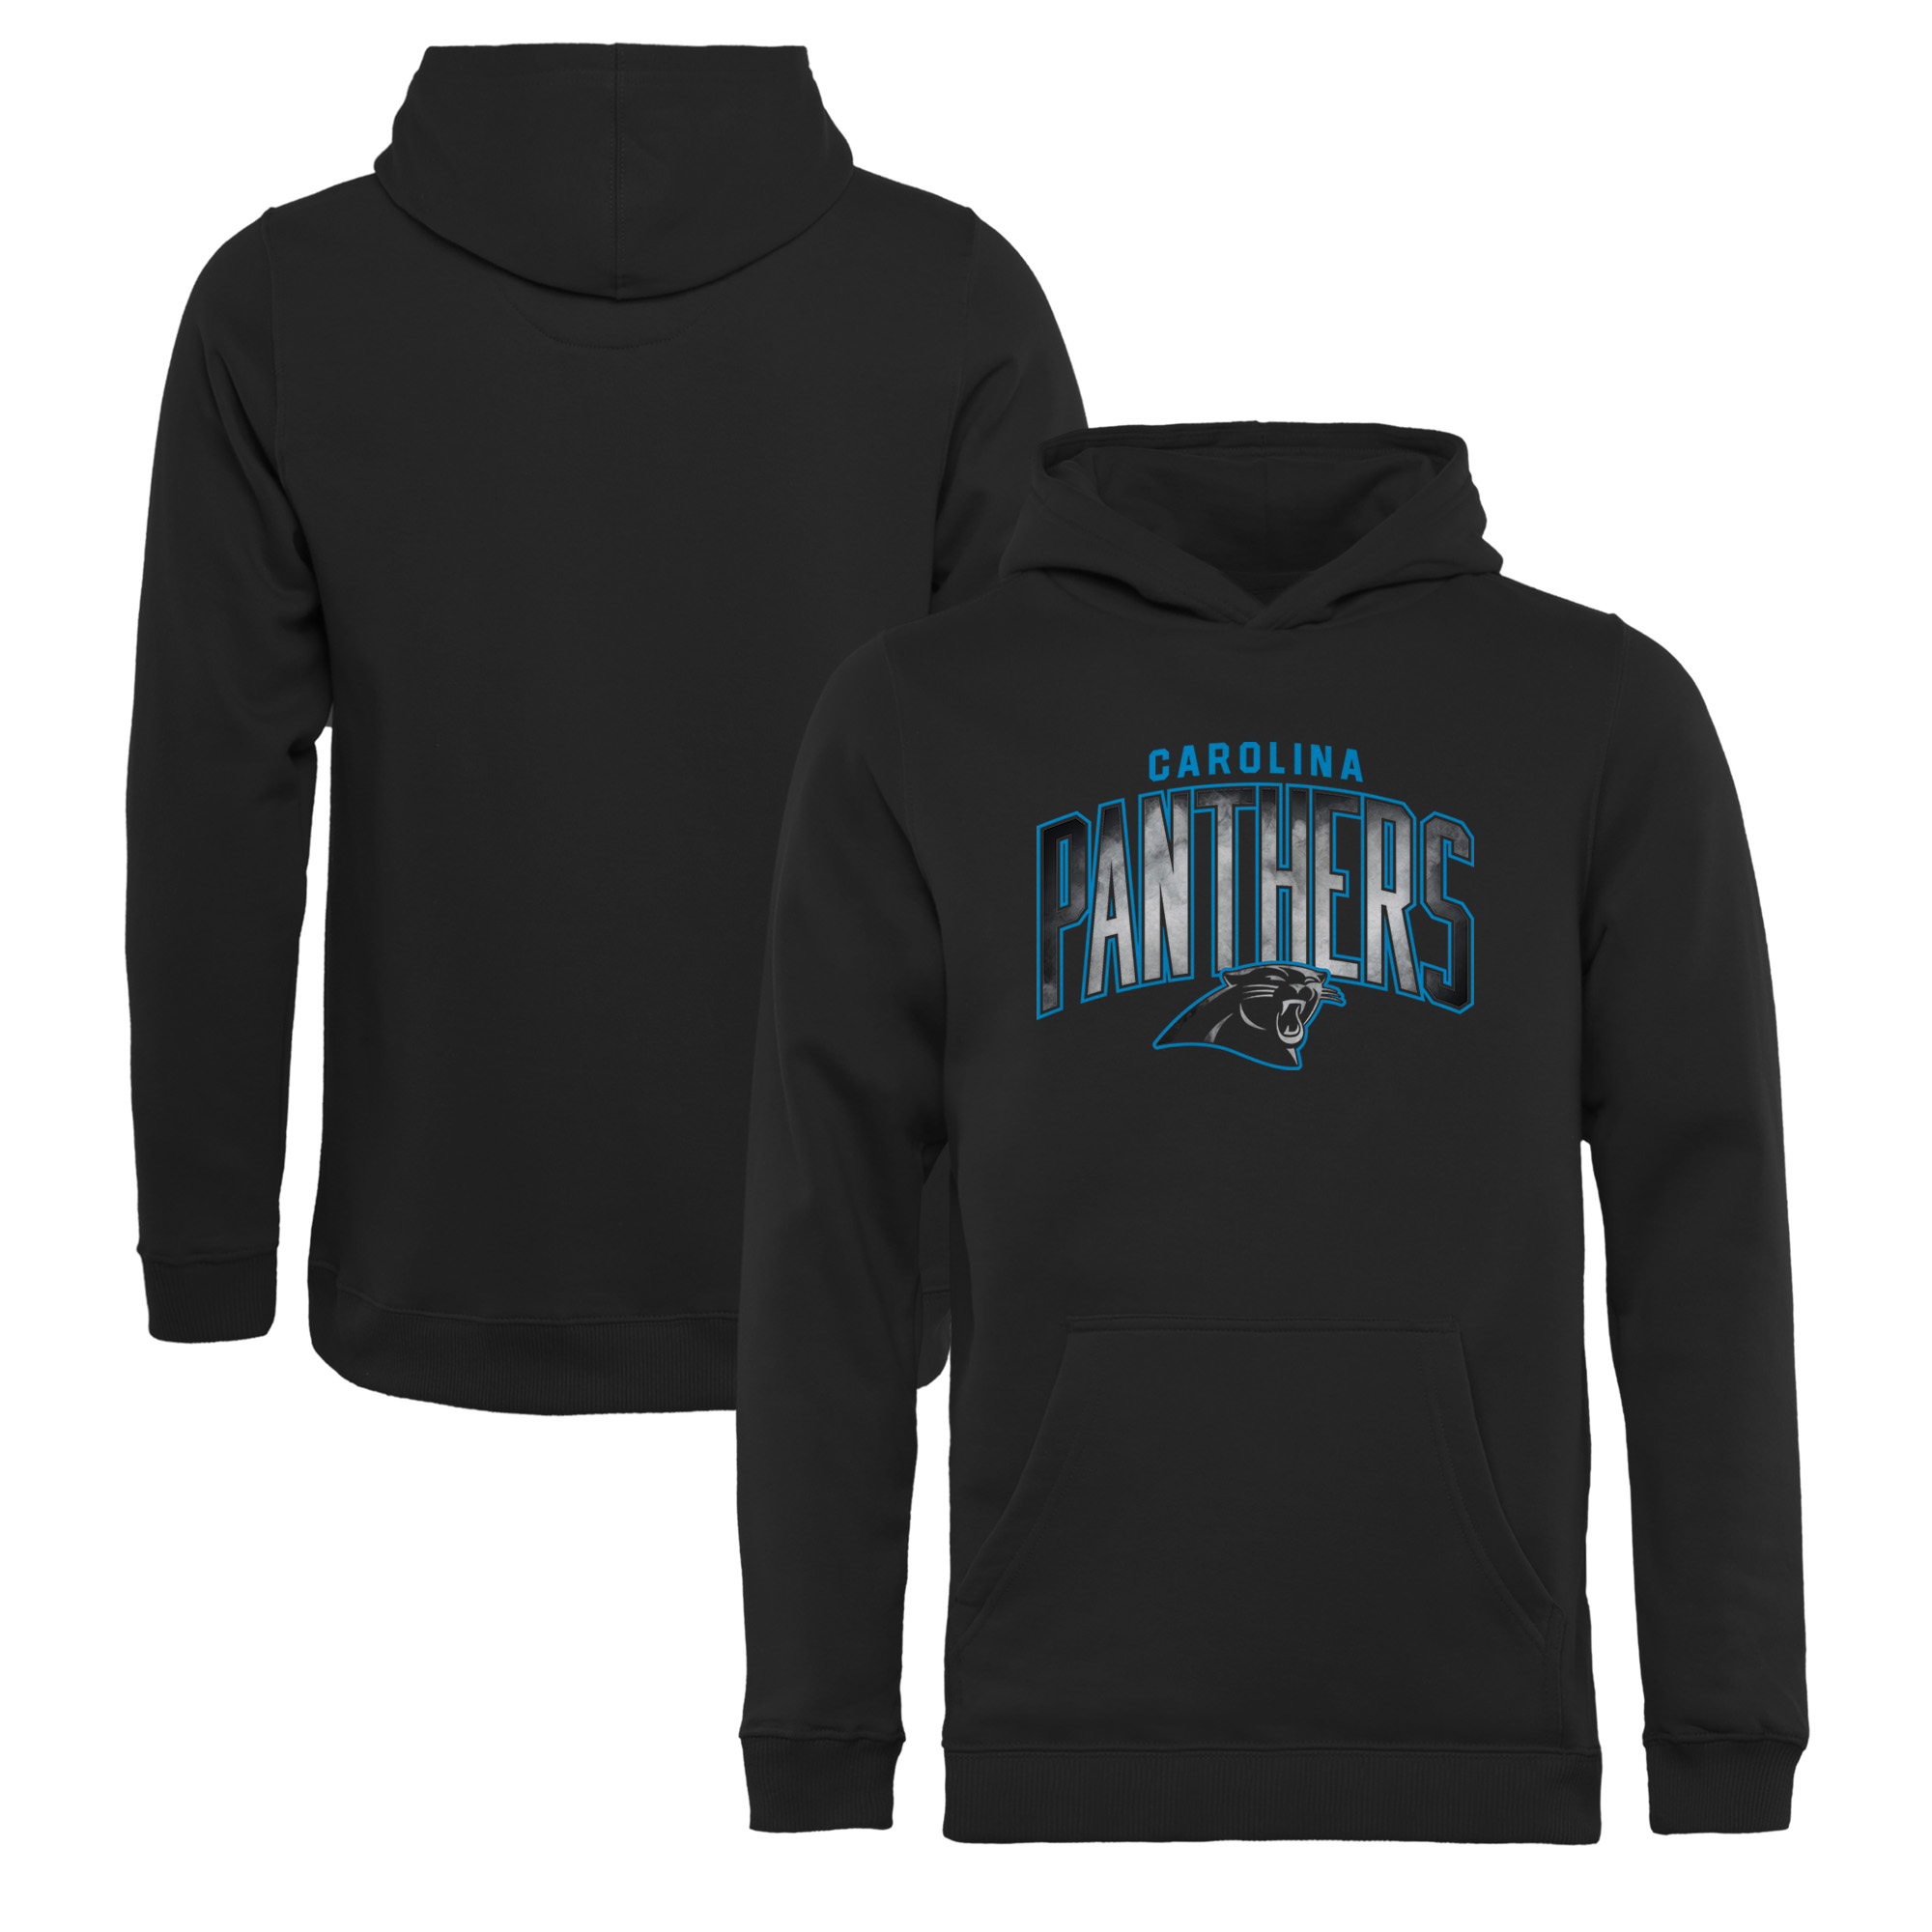 Carolina Panthers NFL Pro Line by Fanatics Branded Youth Arch Smoke Pullover Hoodie - Black